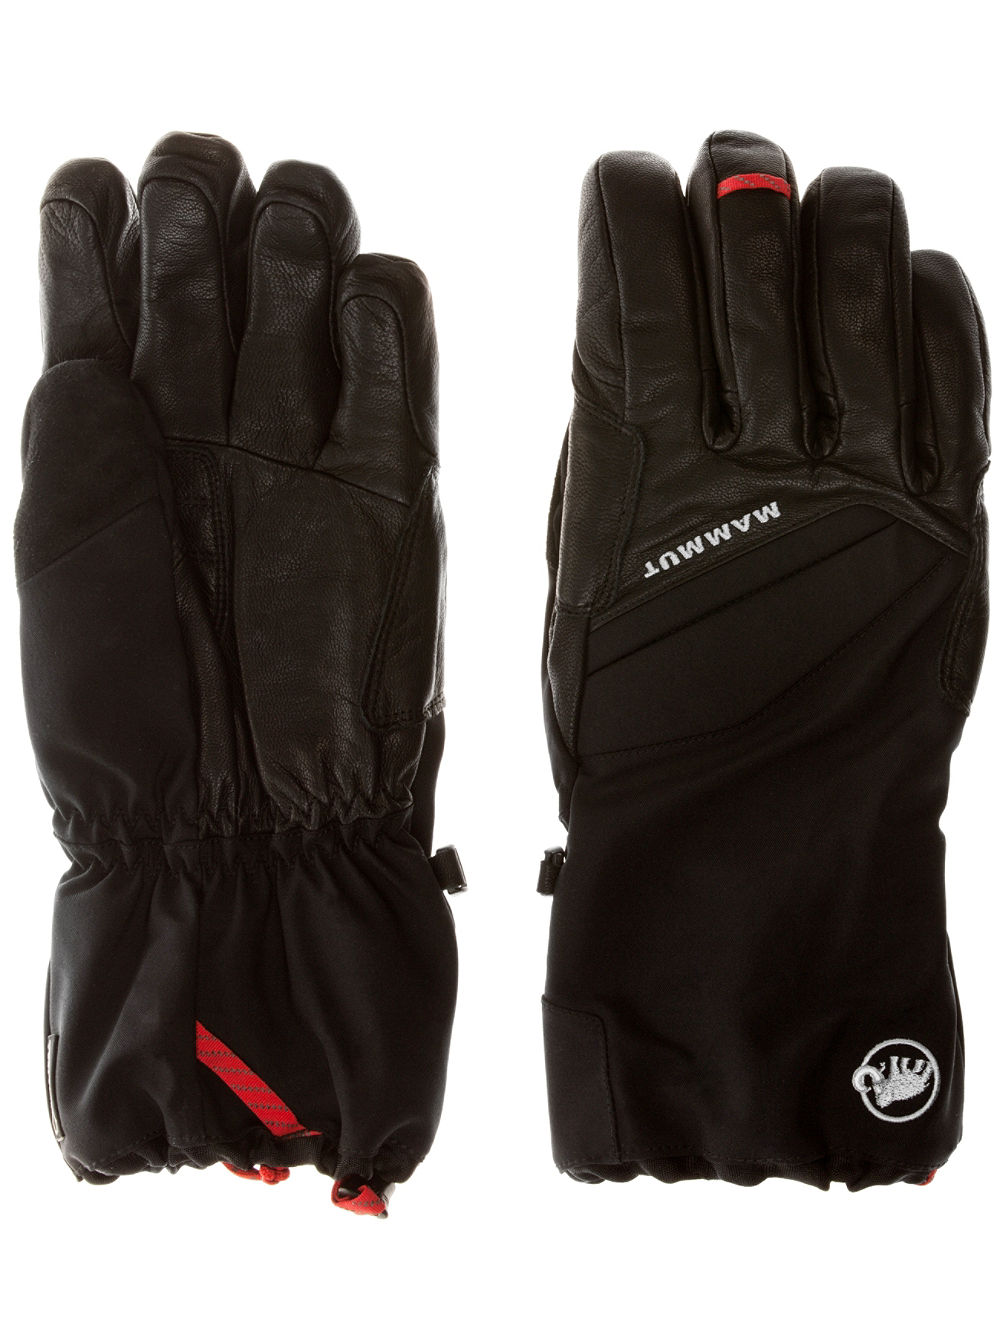 Meron Thermo 2 In 1 Gloves